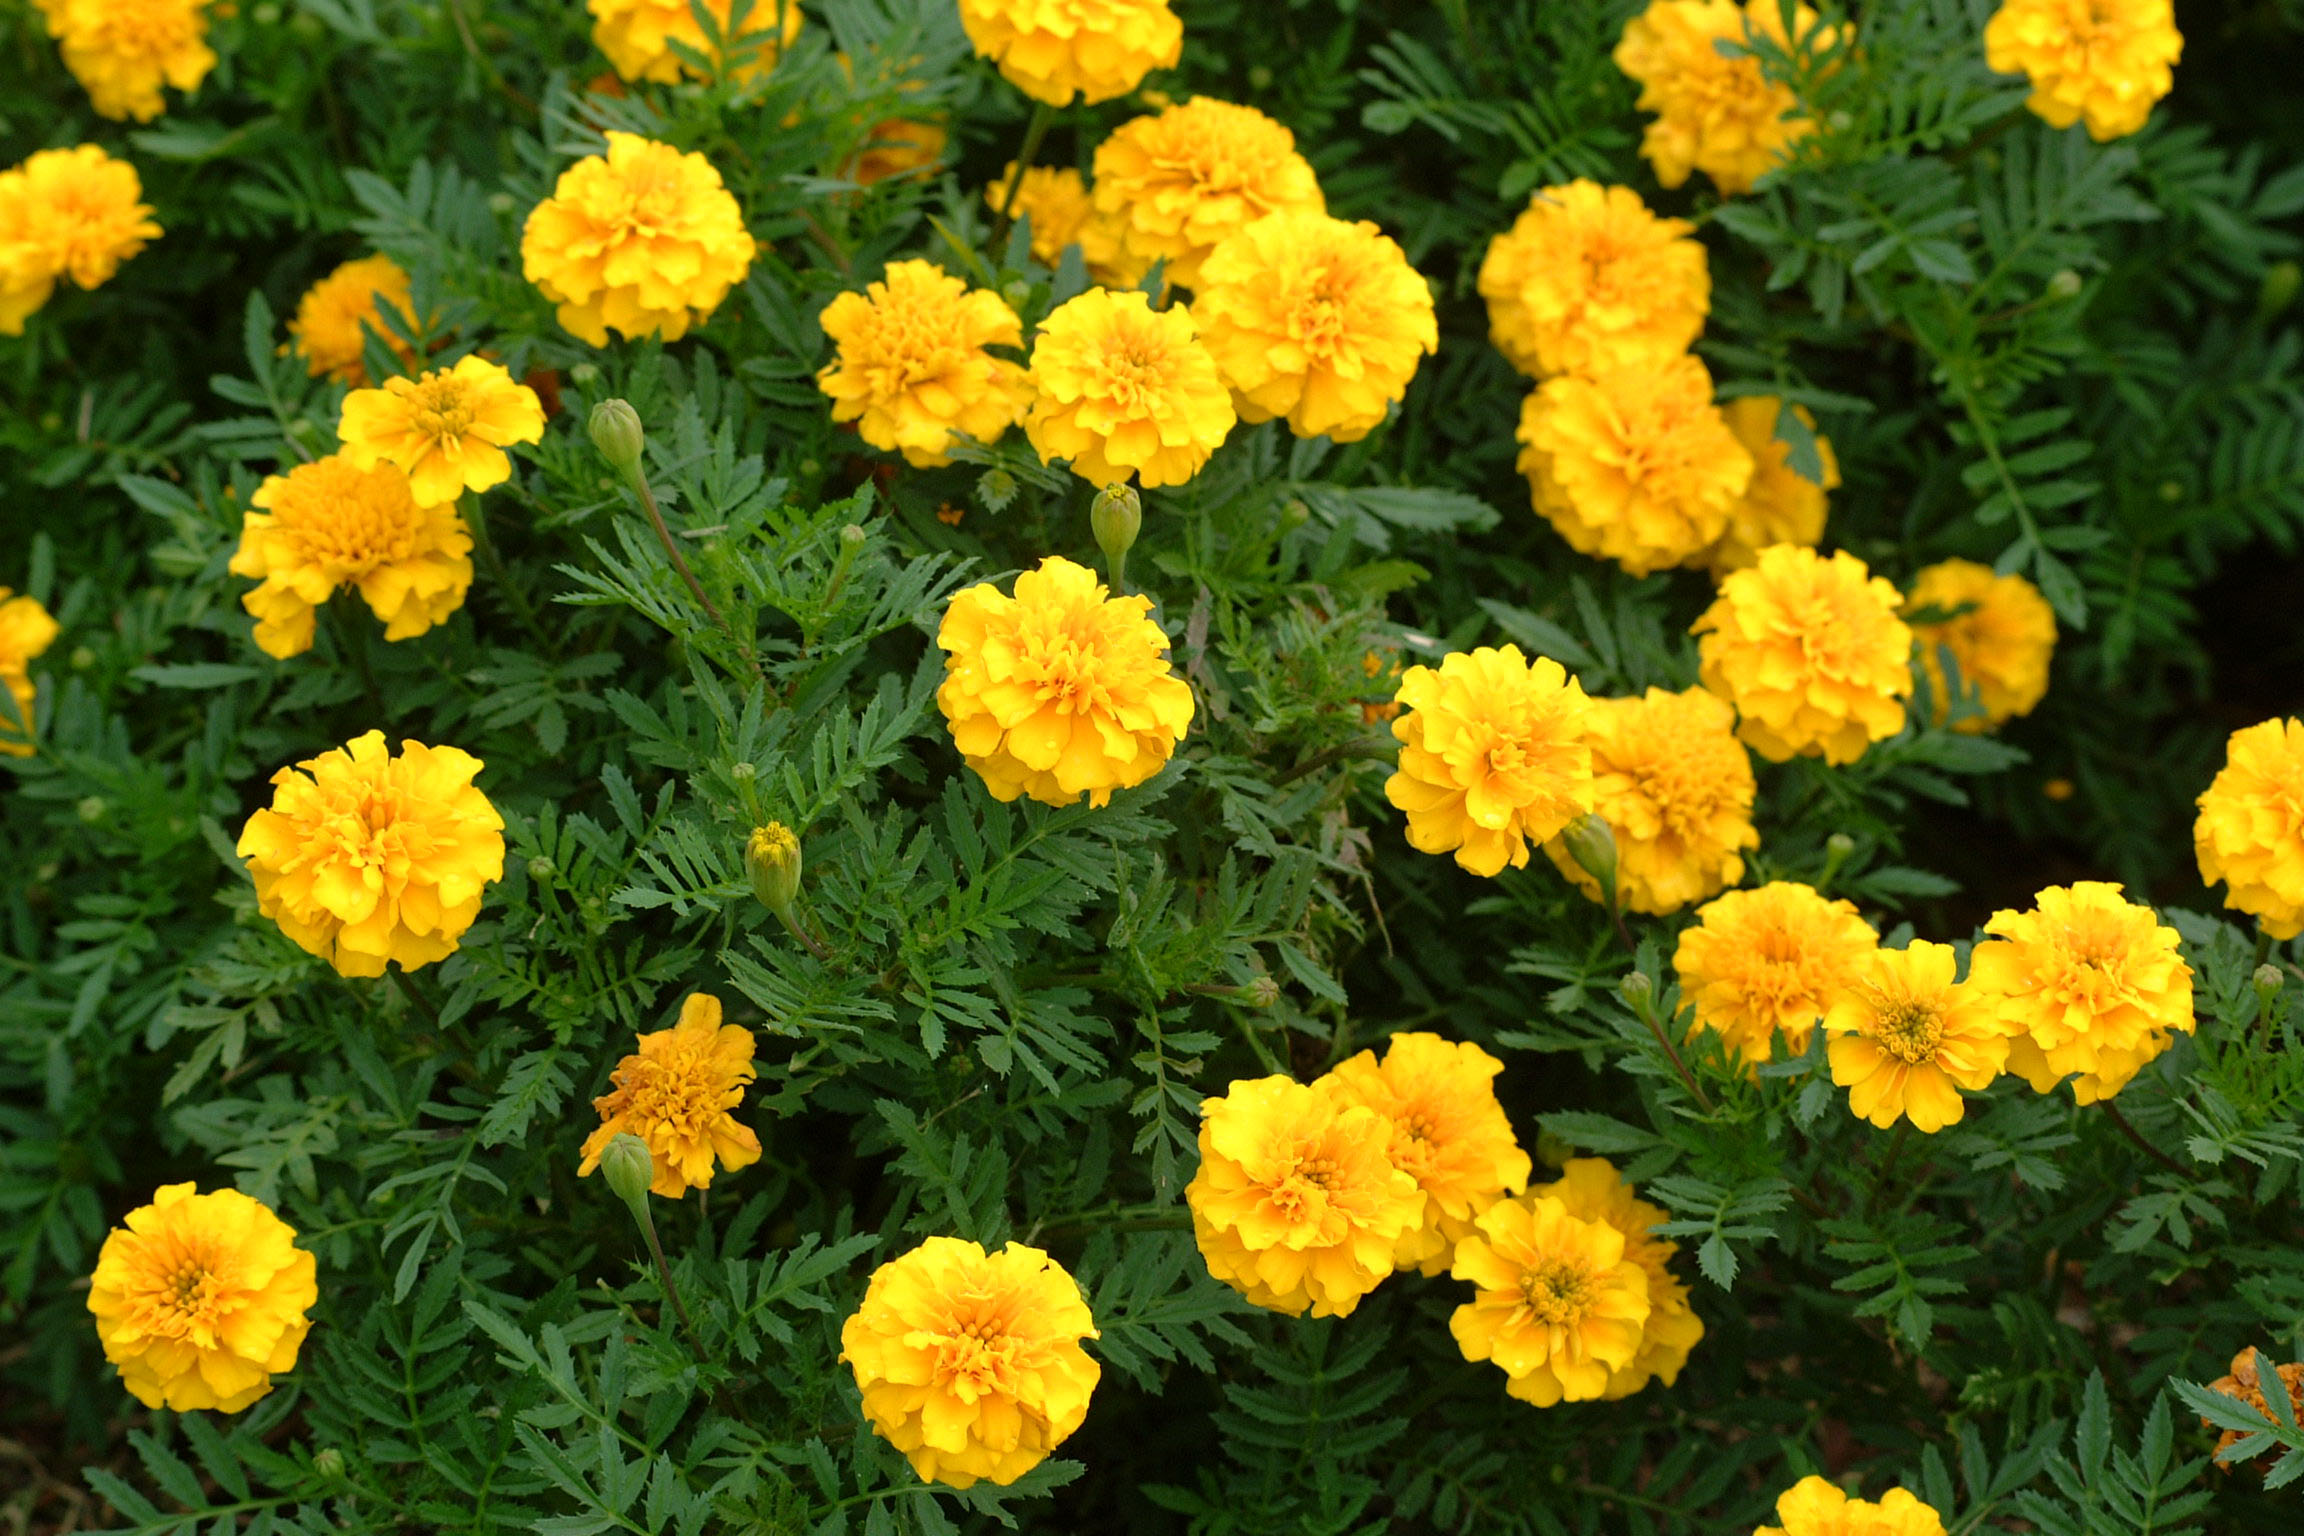 hotweather gardening freshen with new flowers pruning pest control, Natural flower